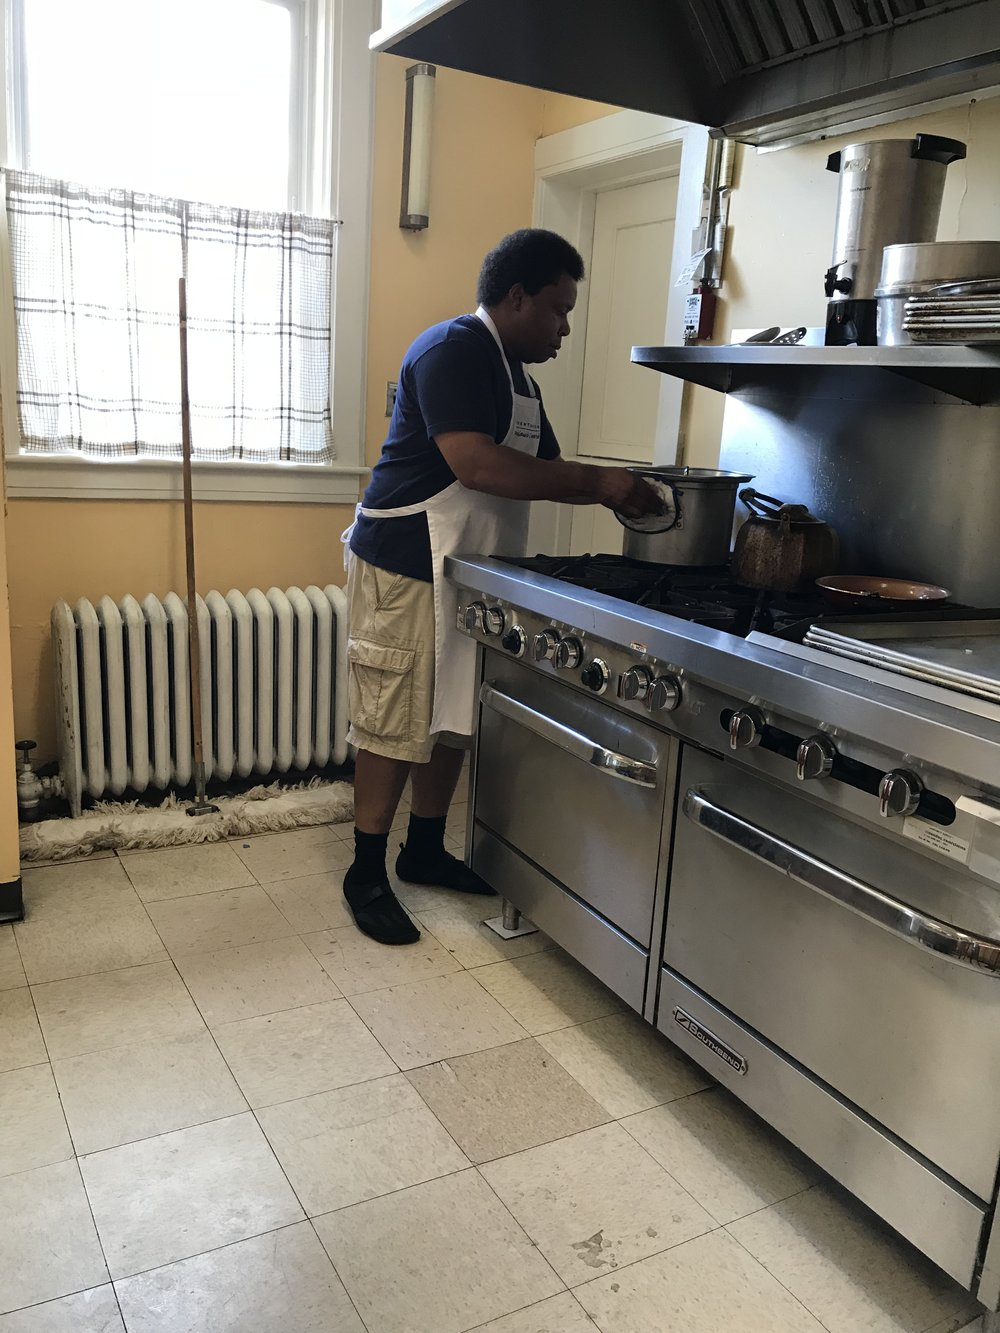 Our kitchen manager Kelvin